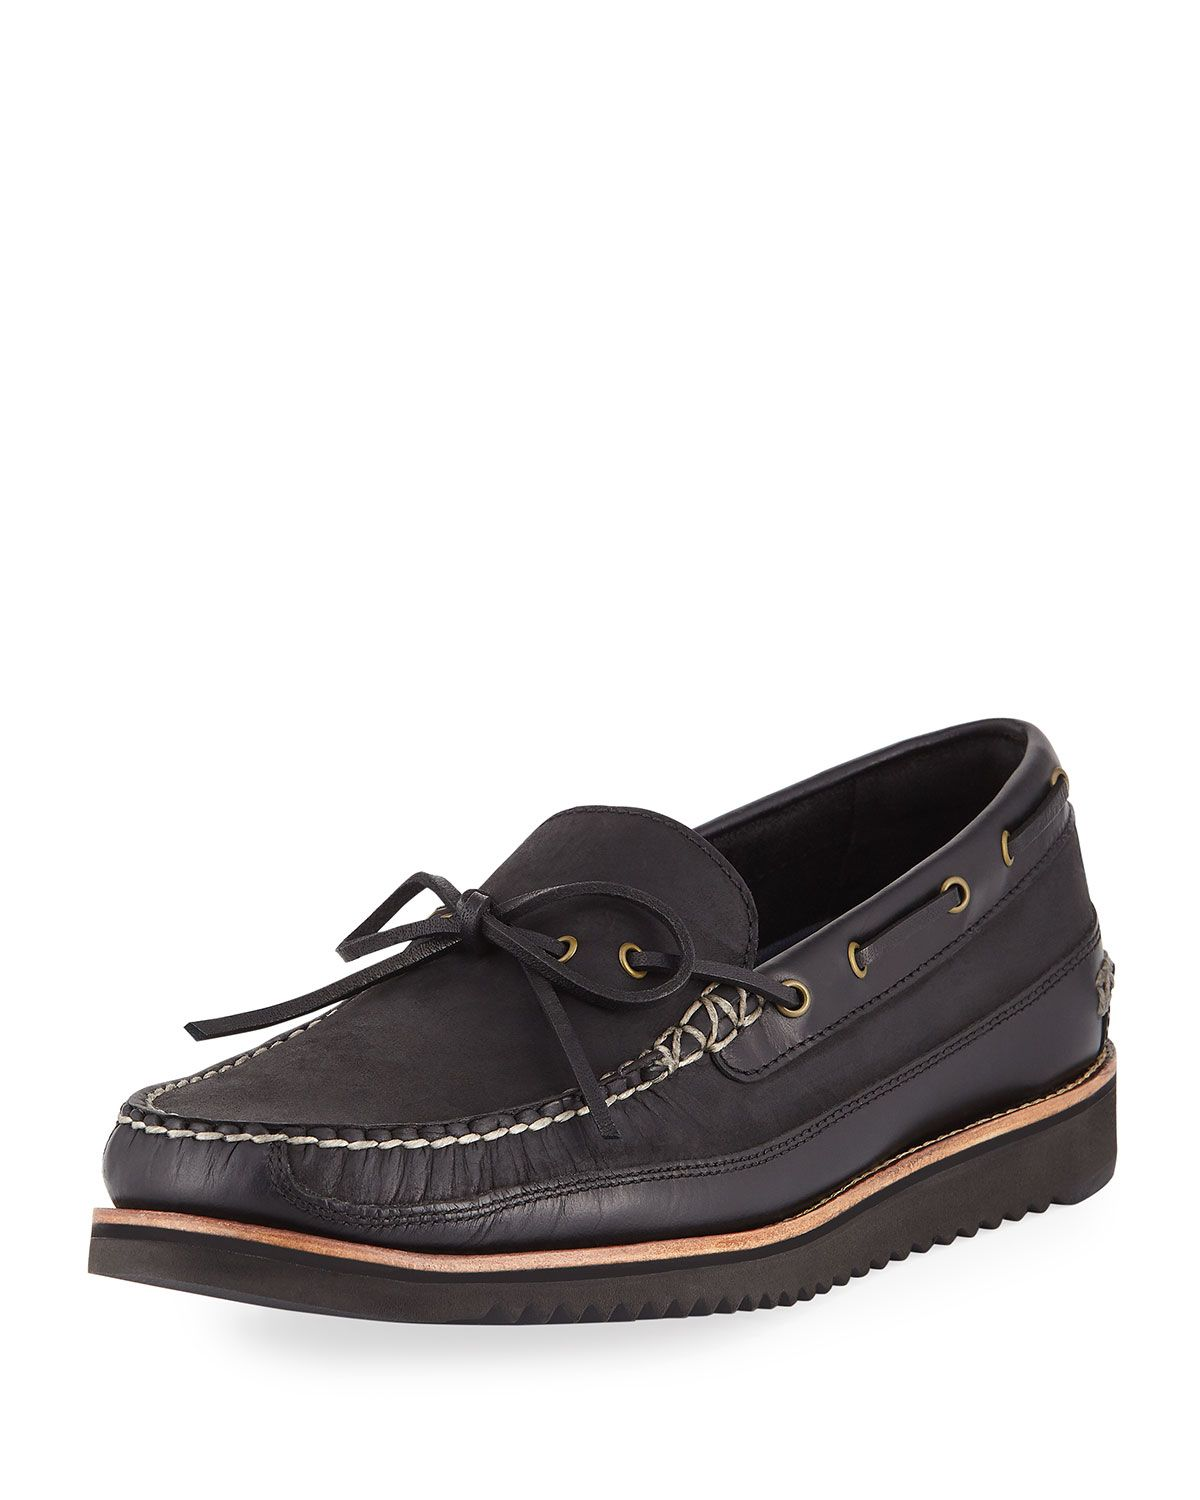 c5467035ad1 COLE HAAN MEN S PINCH RUGGED CAMP BOAT SHOES.  colehaan  shoes ...